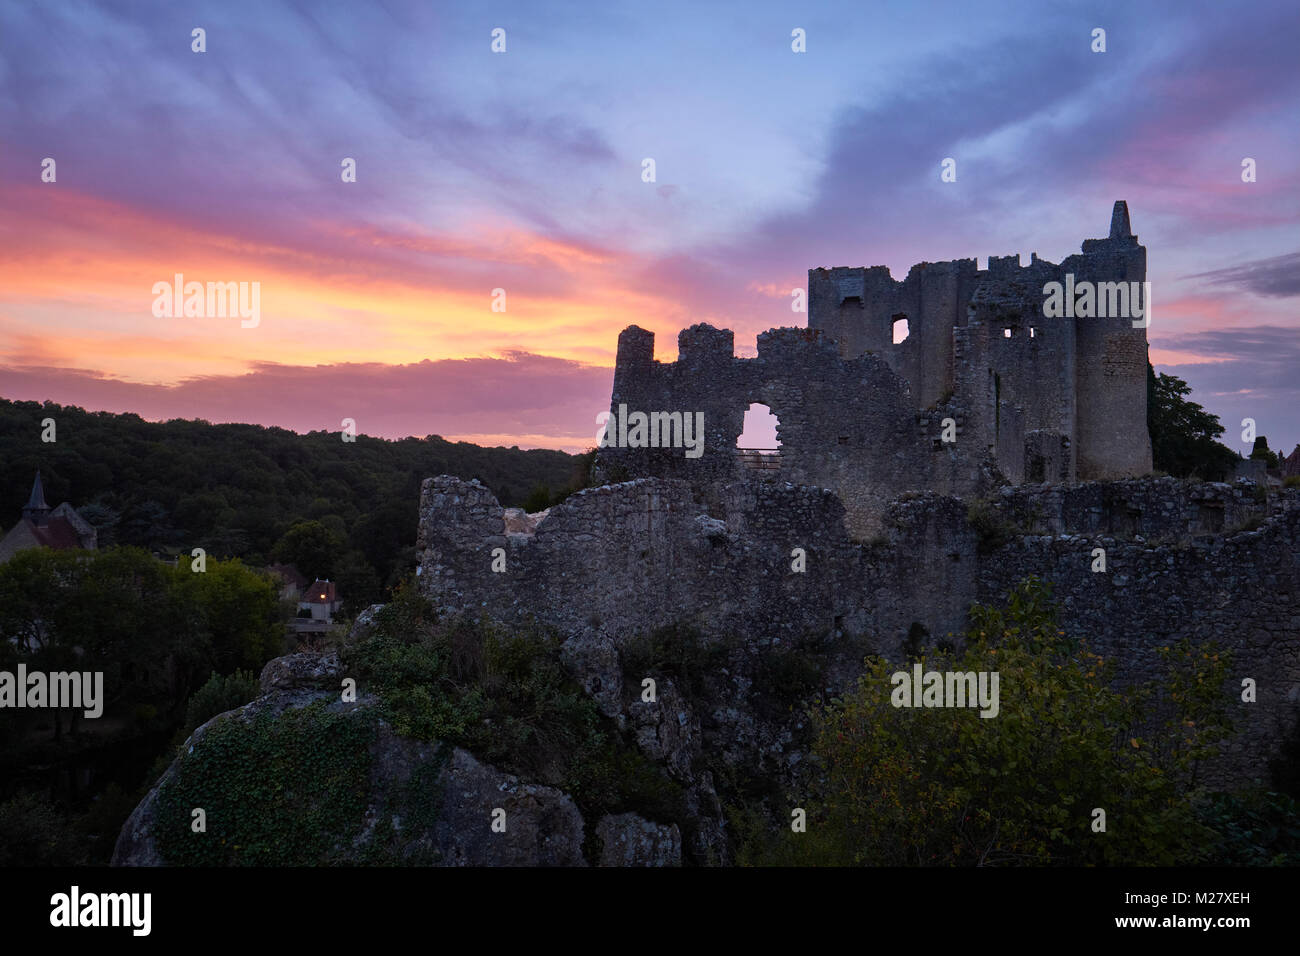 The castle ruins of Angles sur l'Anglin in Vienne France at sunset - One of the most beautiful villages in France. - Stock Image